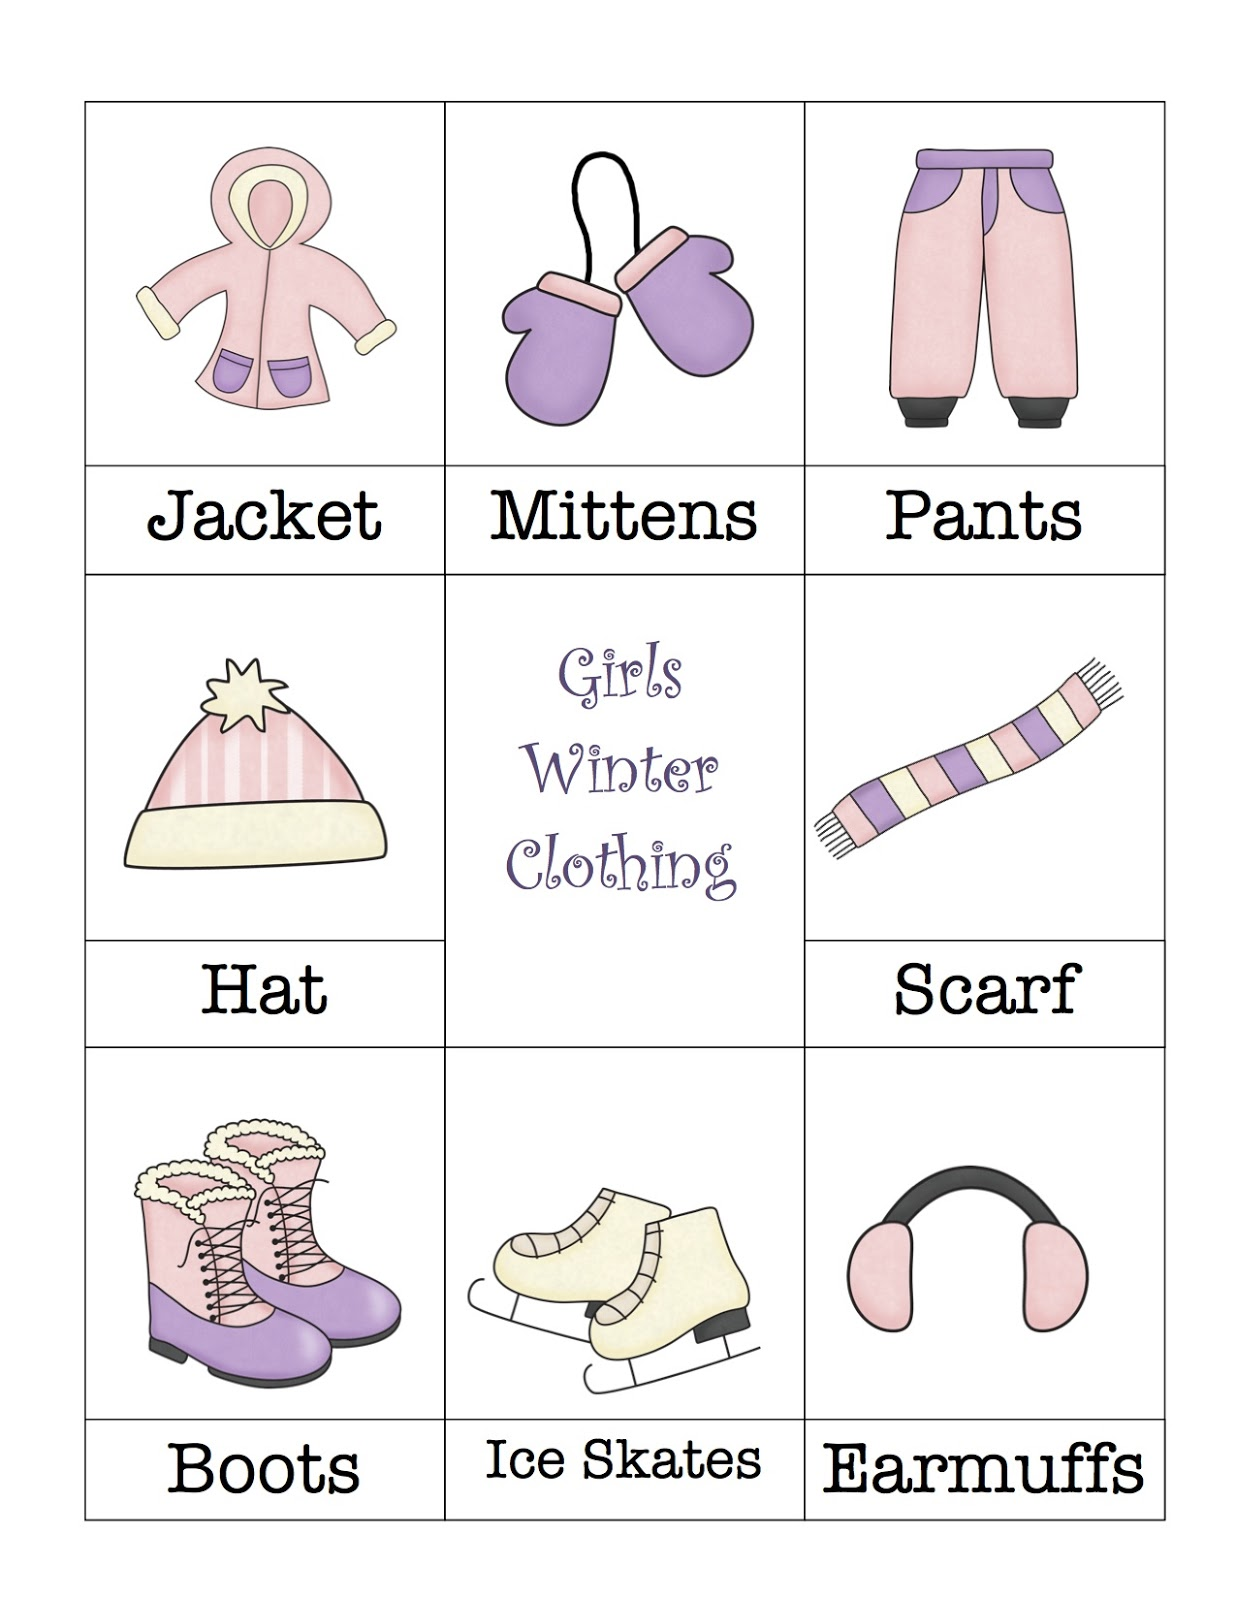 There is also a boy page of clothing like the one above.